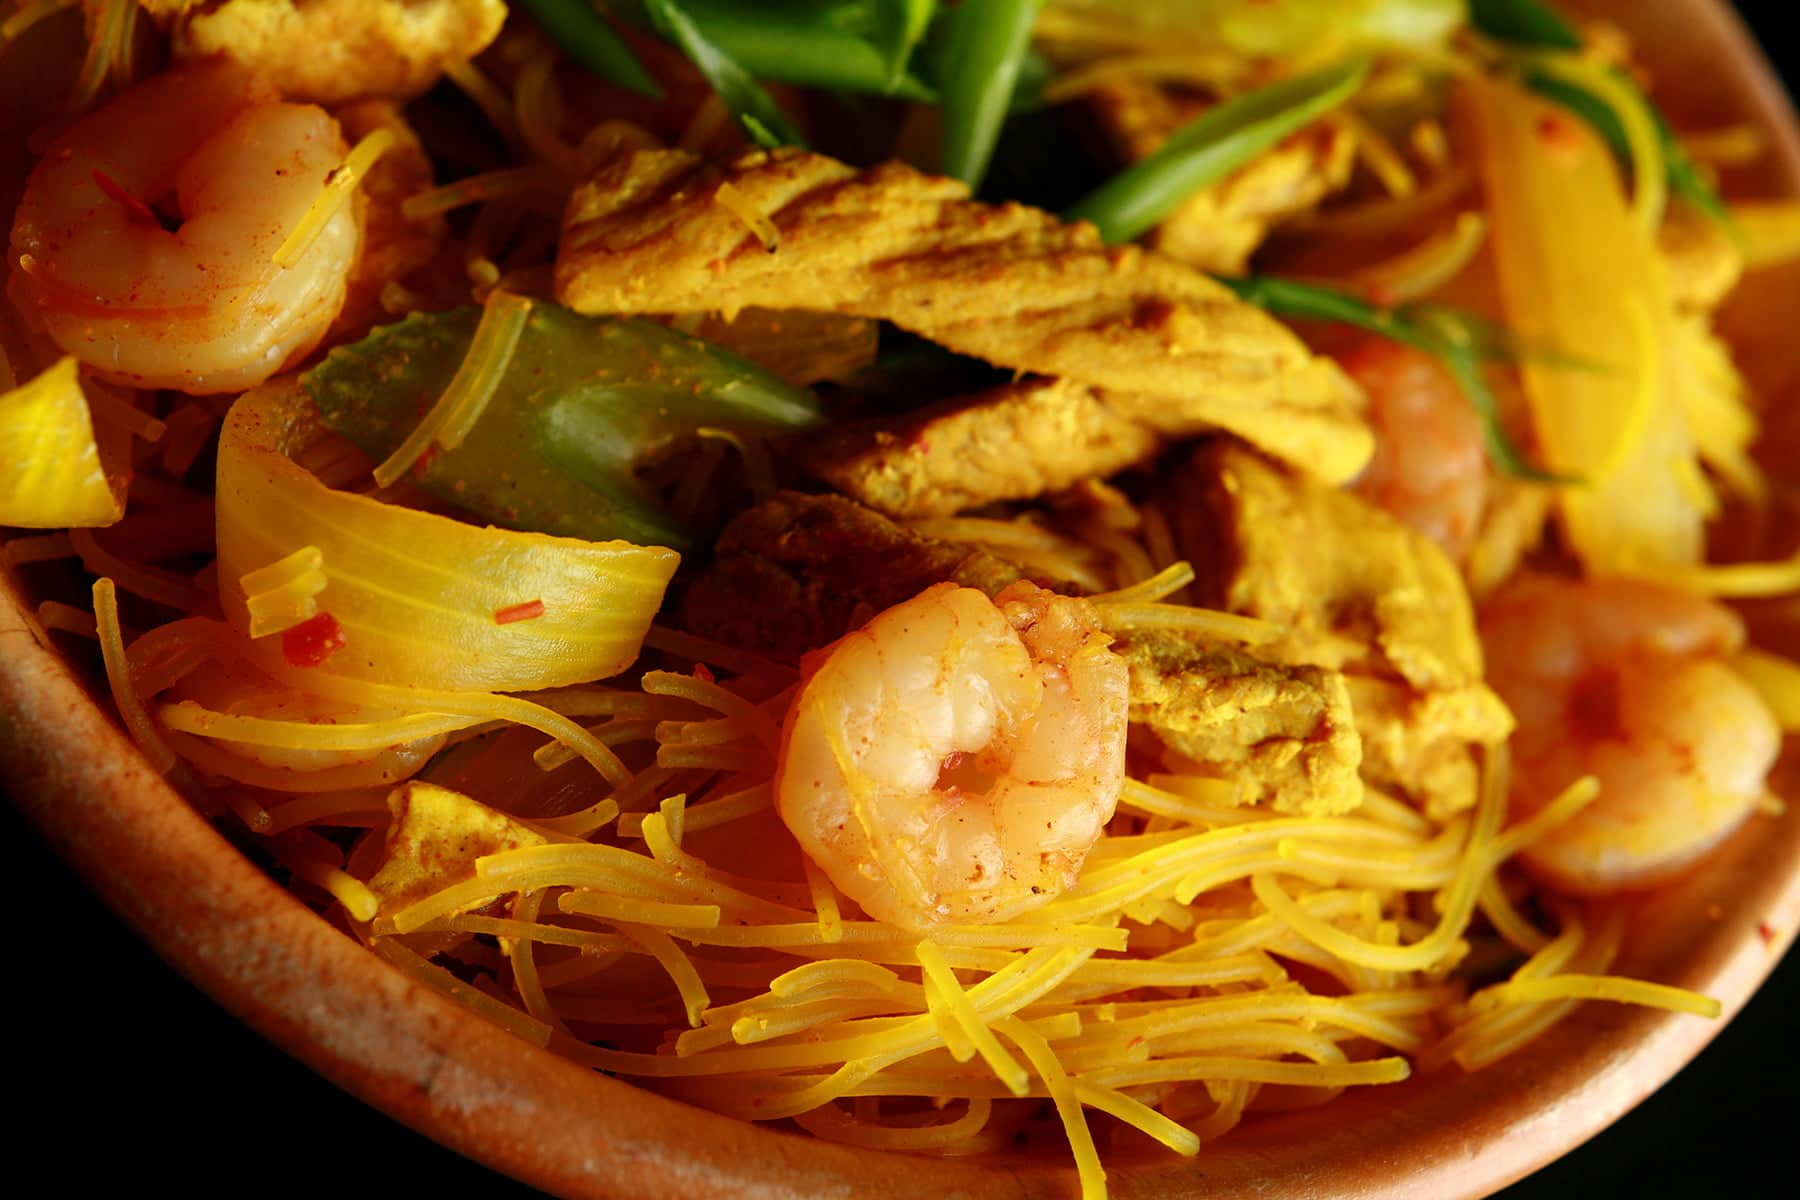 A large bowl of Singapore Mai Fan - curried vermacelli noodles with onion, celery, chicken, and shrimp visible throughout.